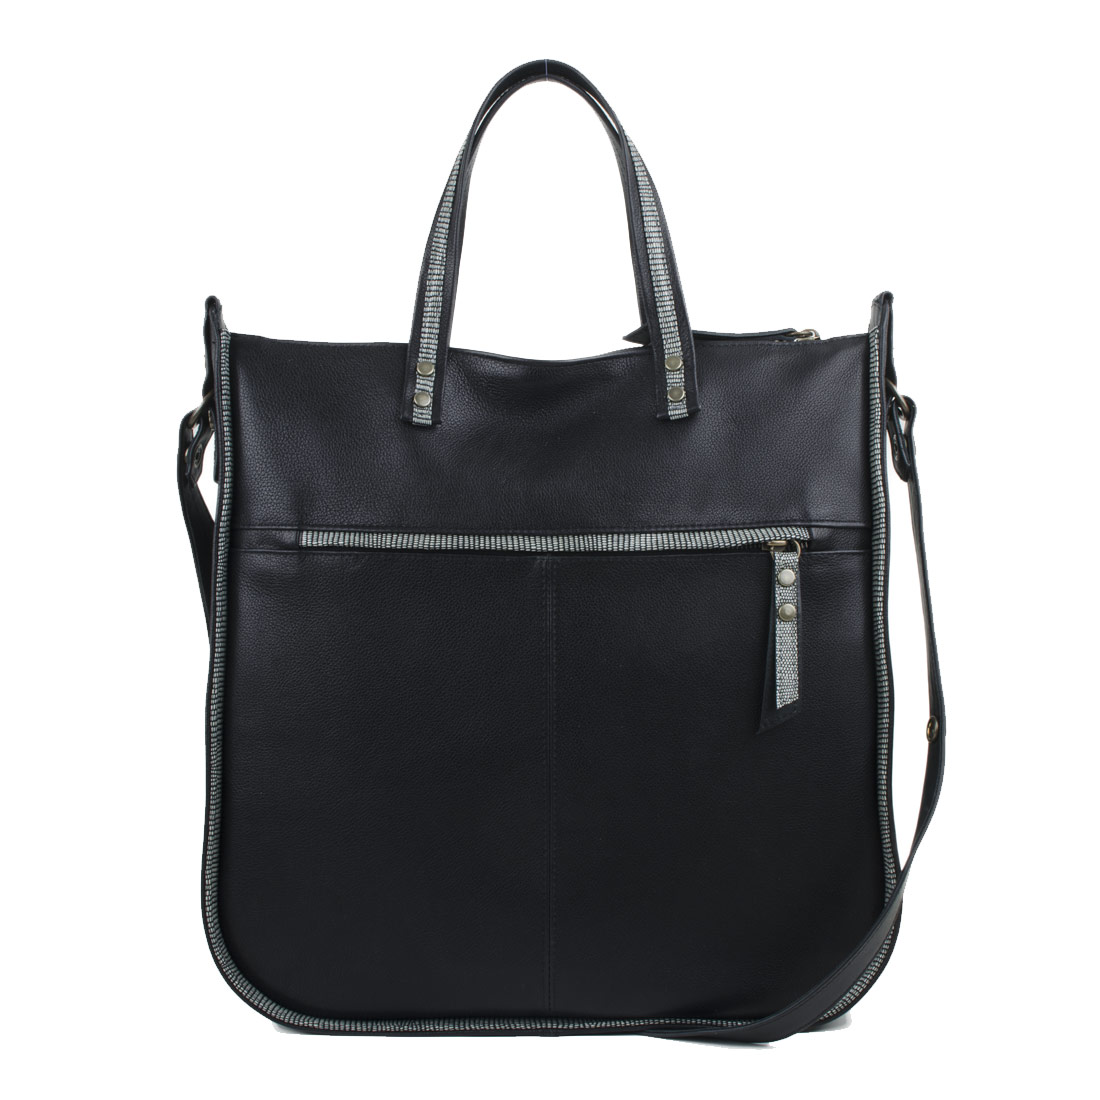 Tessa Black Leather Tote